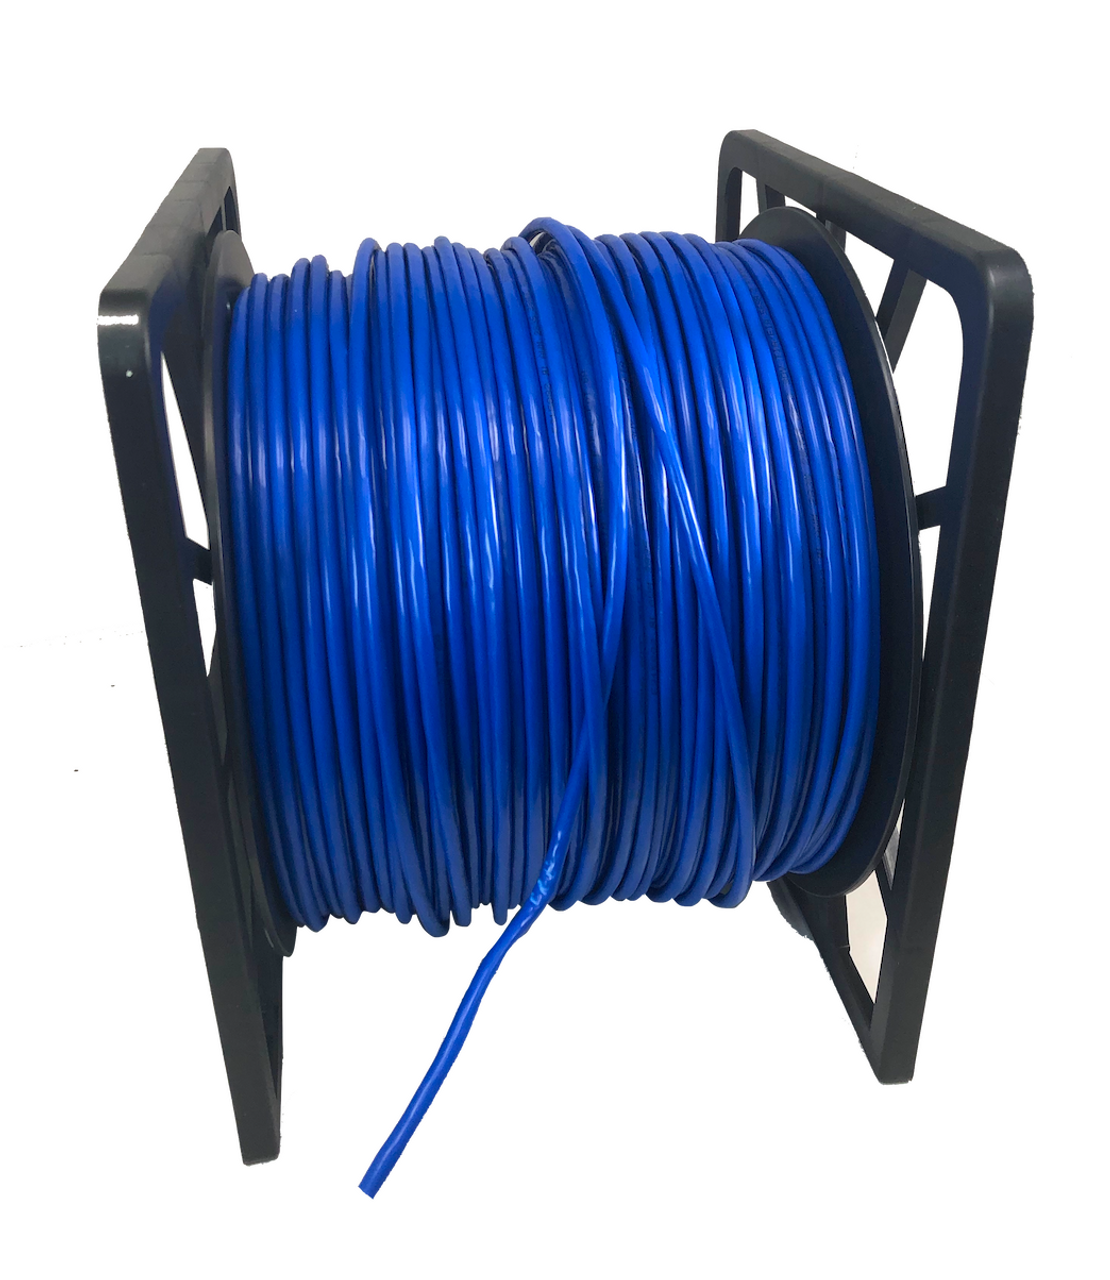 CAT 6A Stranded STP Bulk Ethernet Cable Blue - 1000 ft box